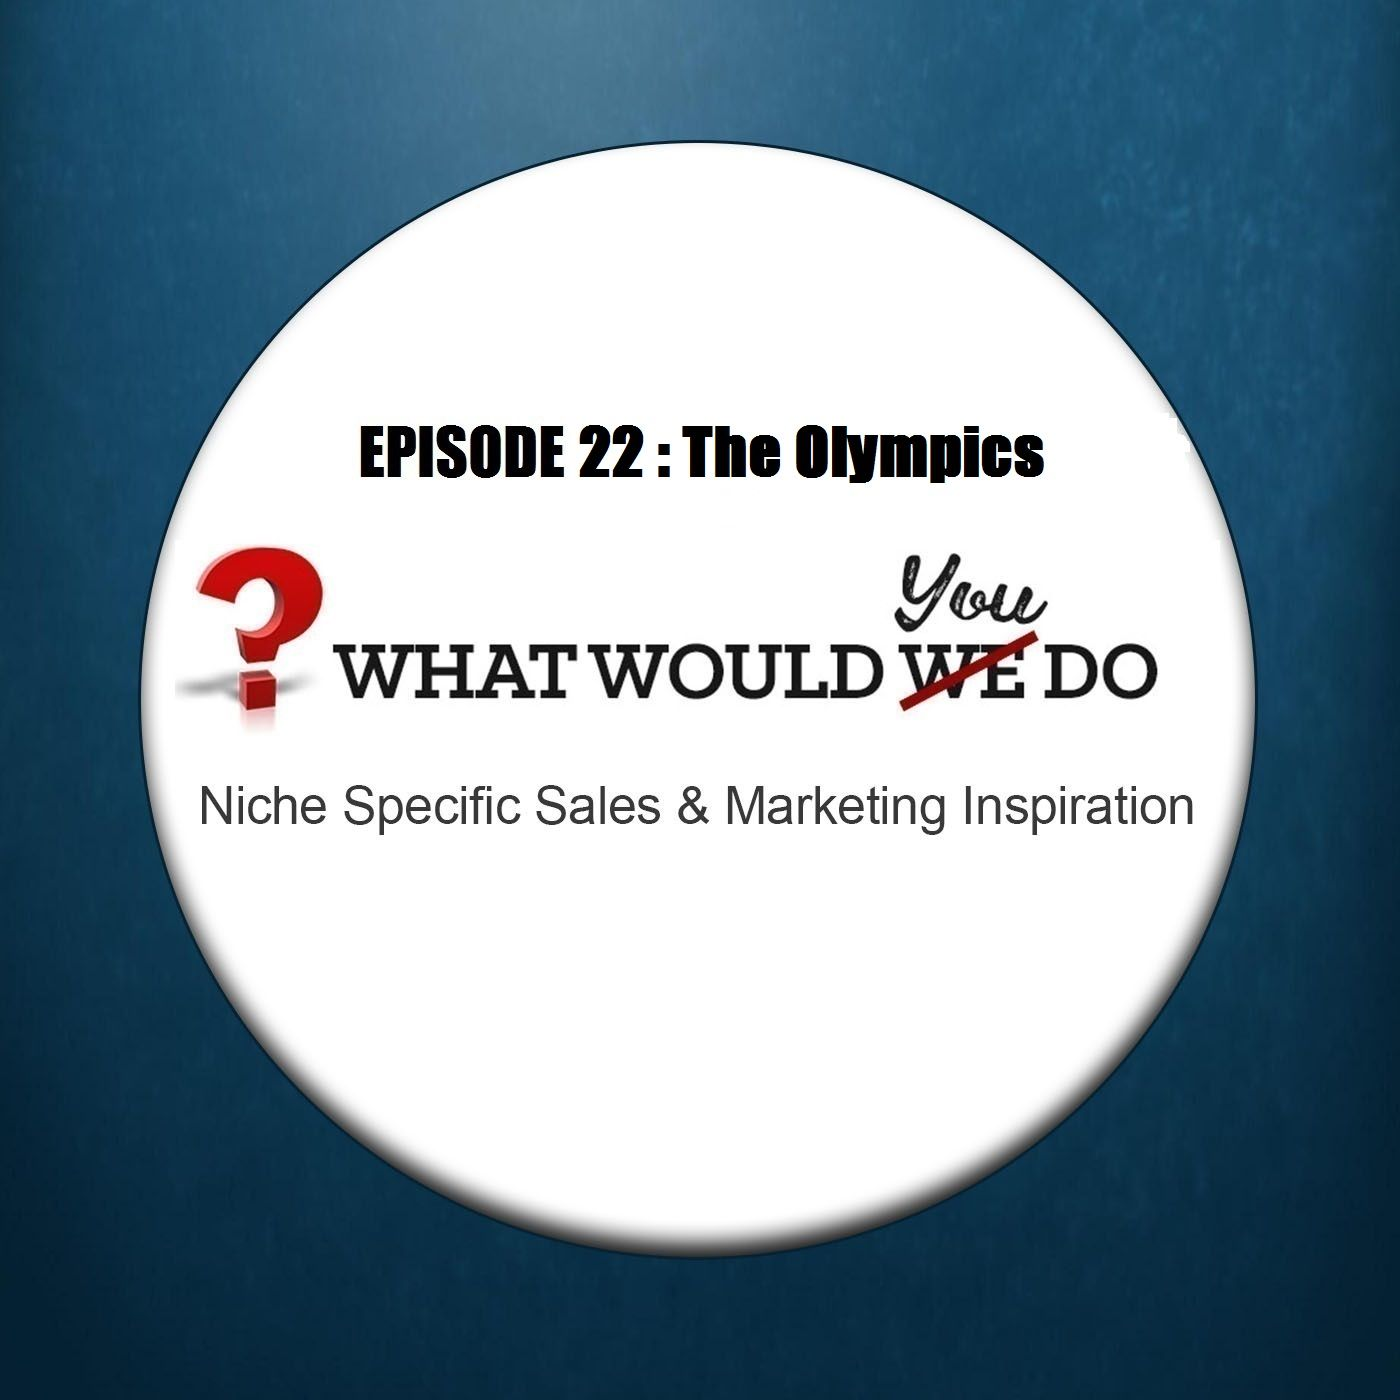 The Olympics - Sales & Marketing Ideas To Inspire Companies To Use Major Events Like The Olympics Effectively